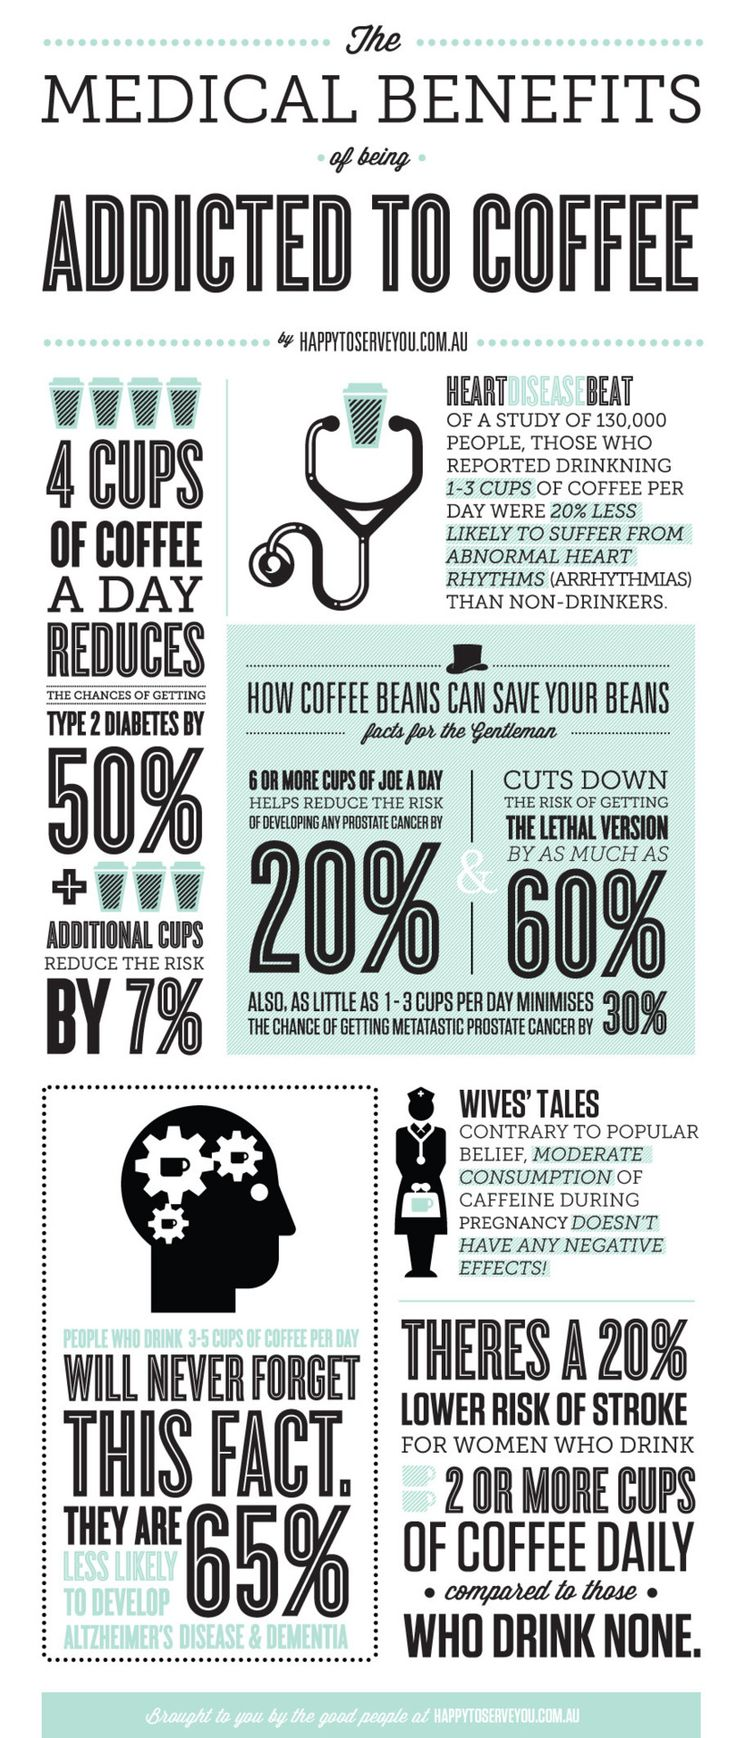 These facts are not throughly proved, but if you love coffee you won't care for the truth anyway.    coffee.happytoserveyou.com.au